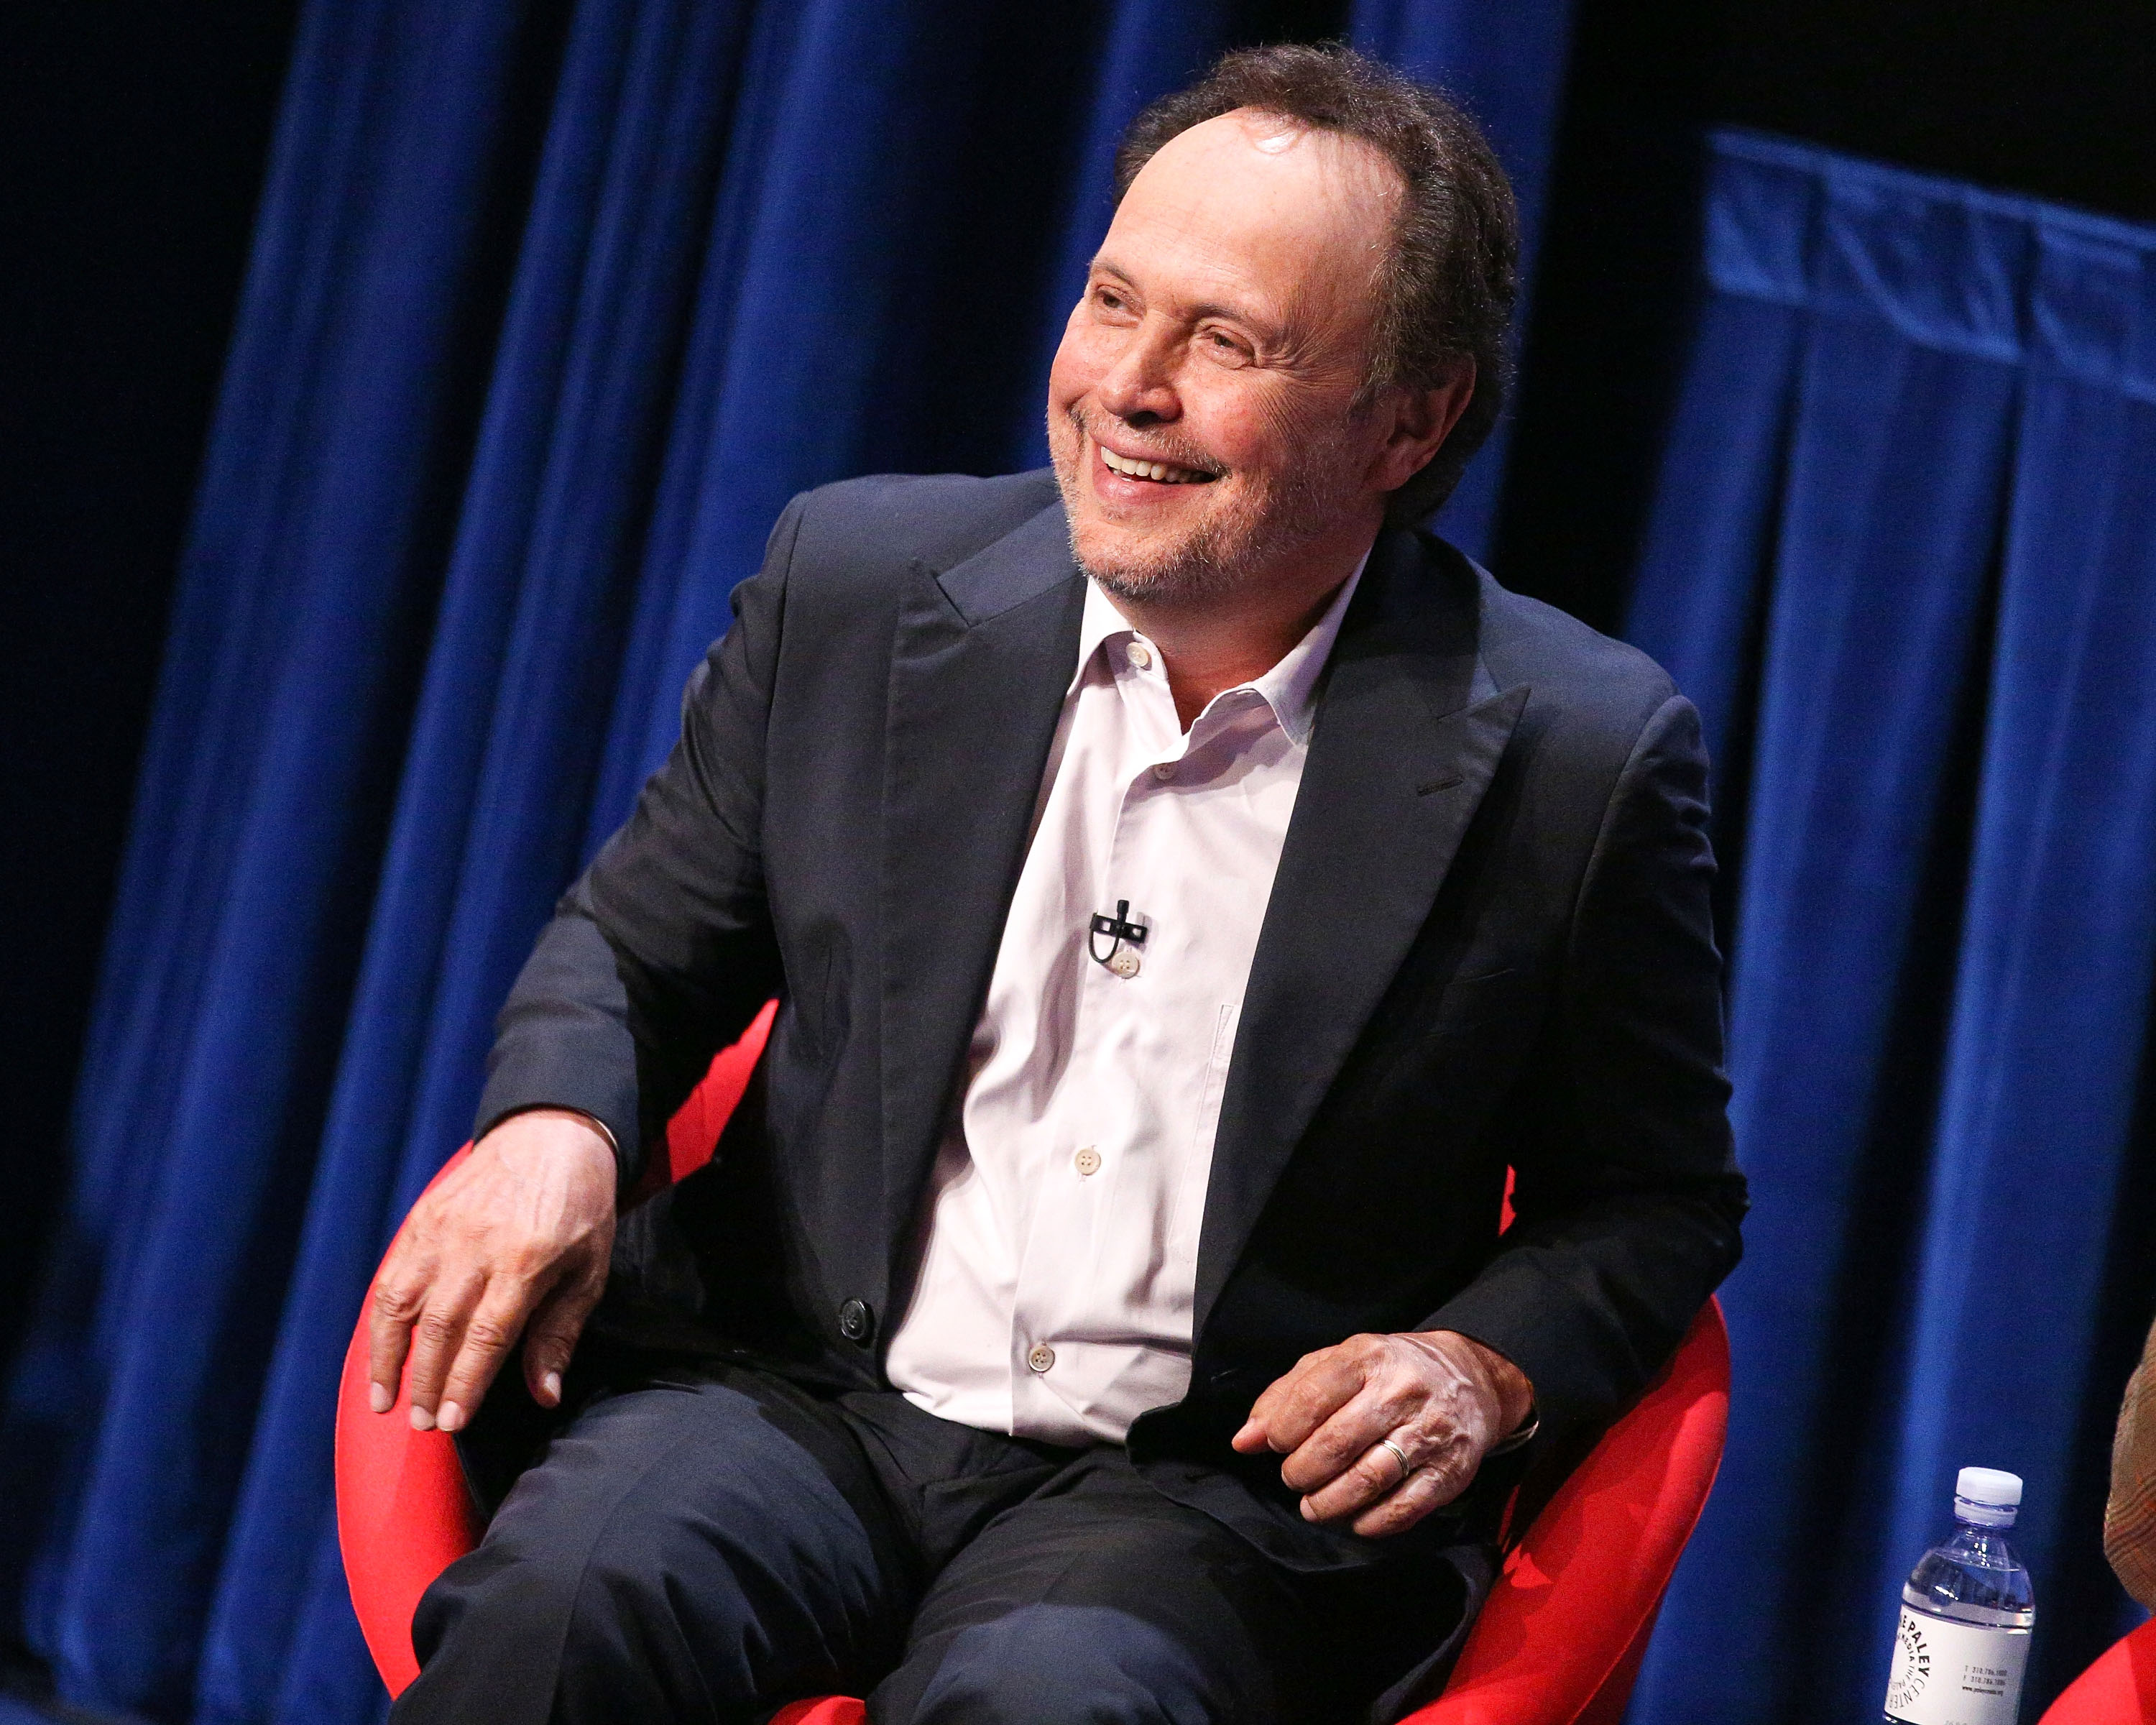 Billy Crystal will perform two nights at the Fallsview Casino in Niagara Falls, Ont. (Getty Images)